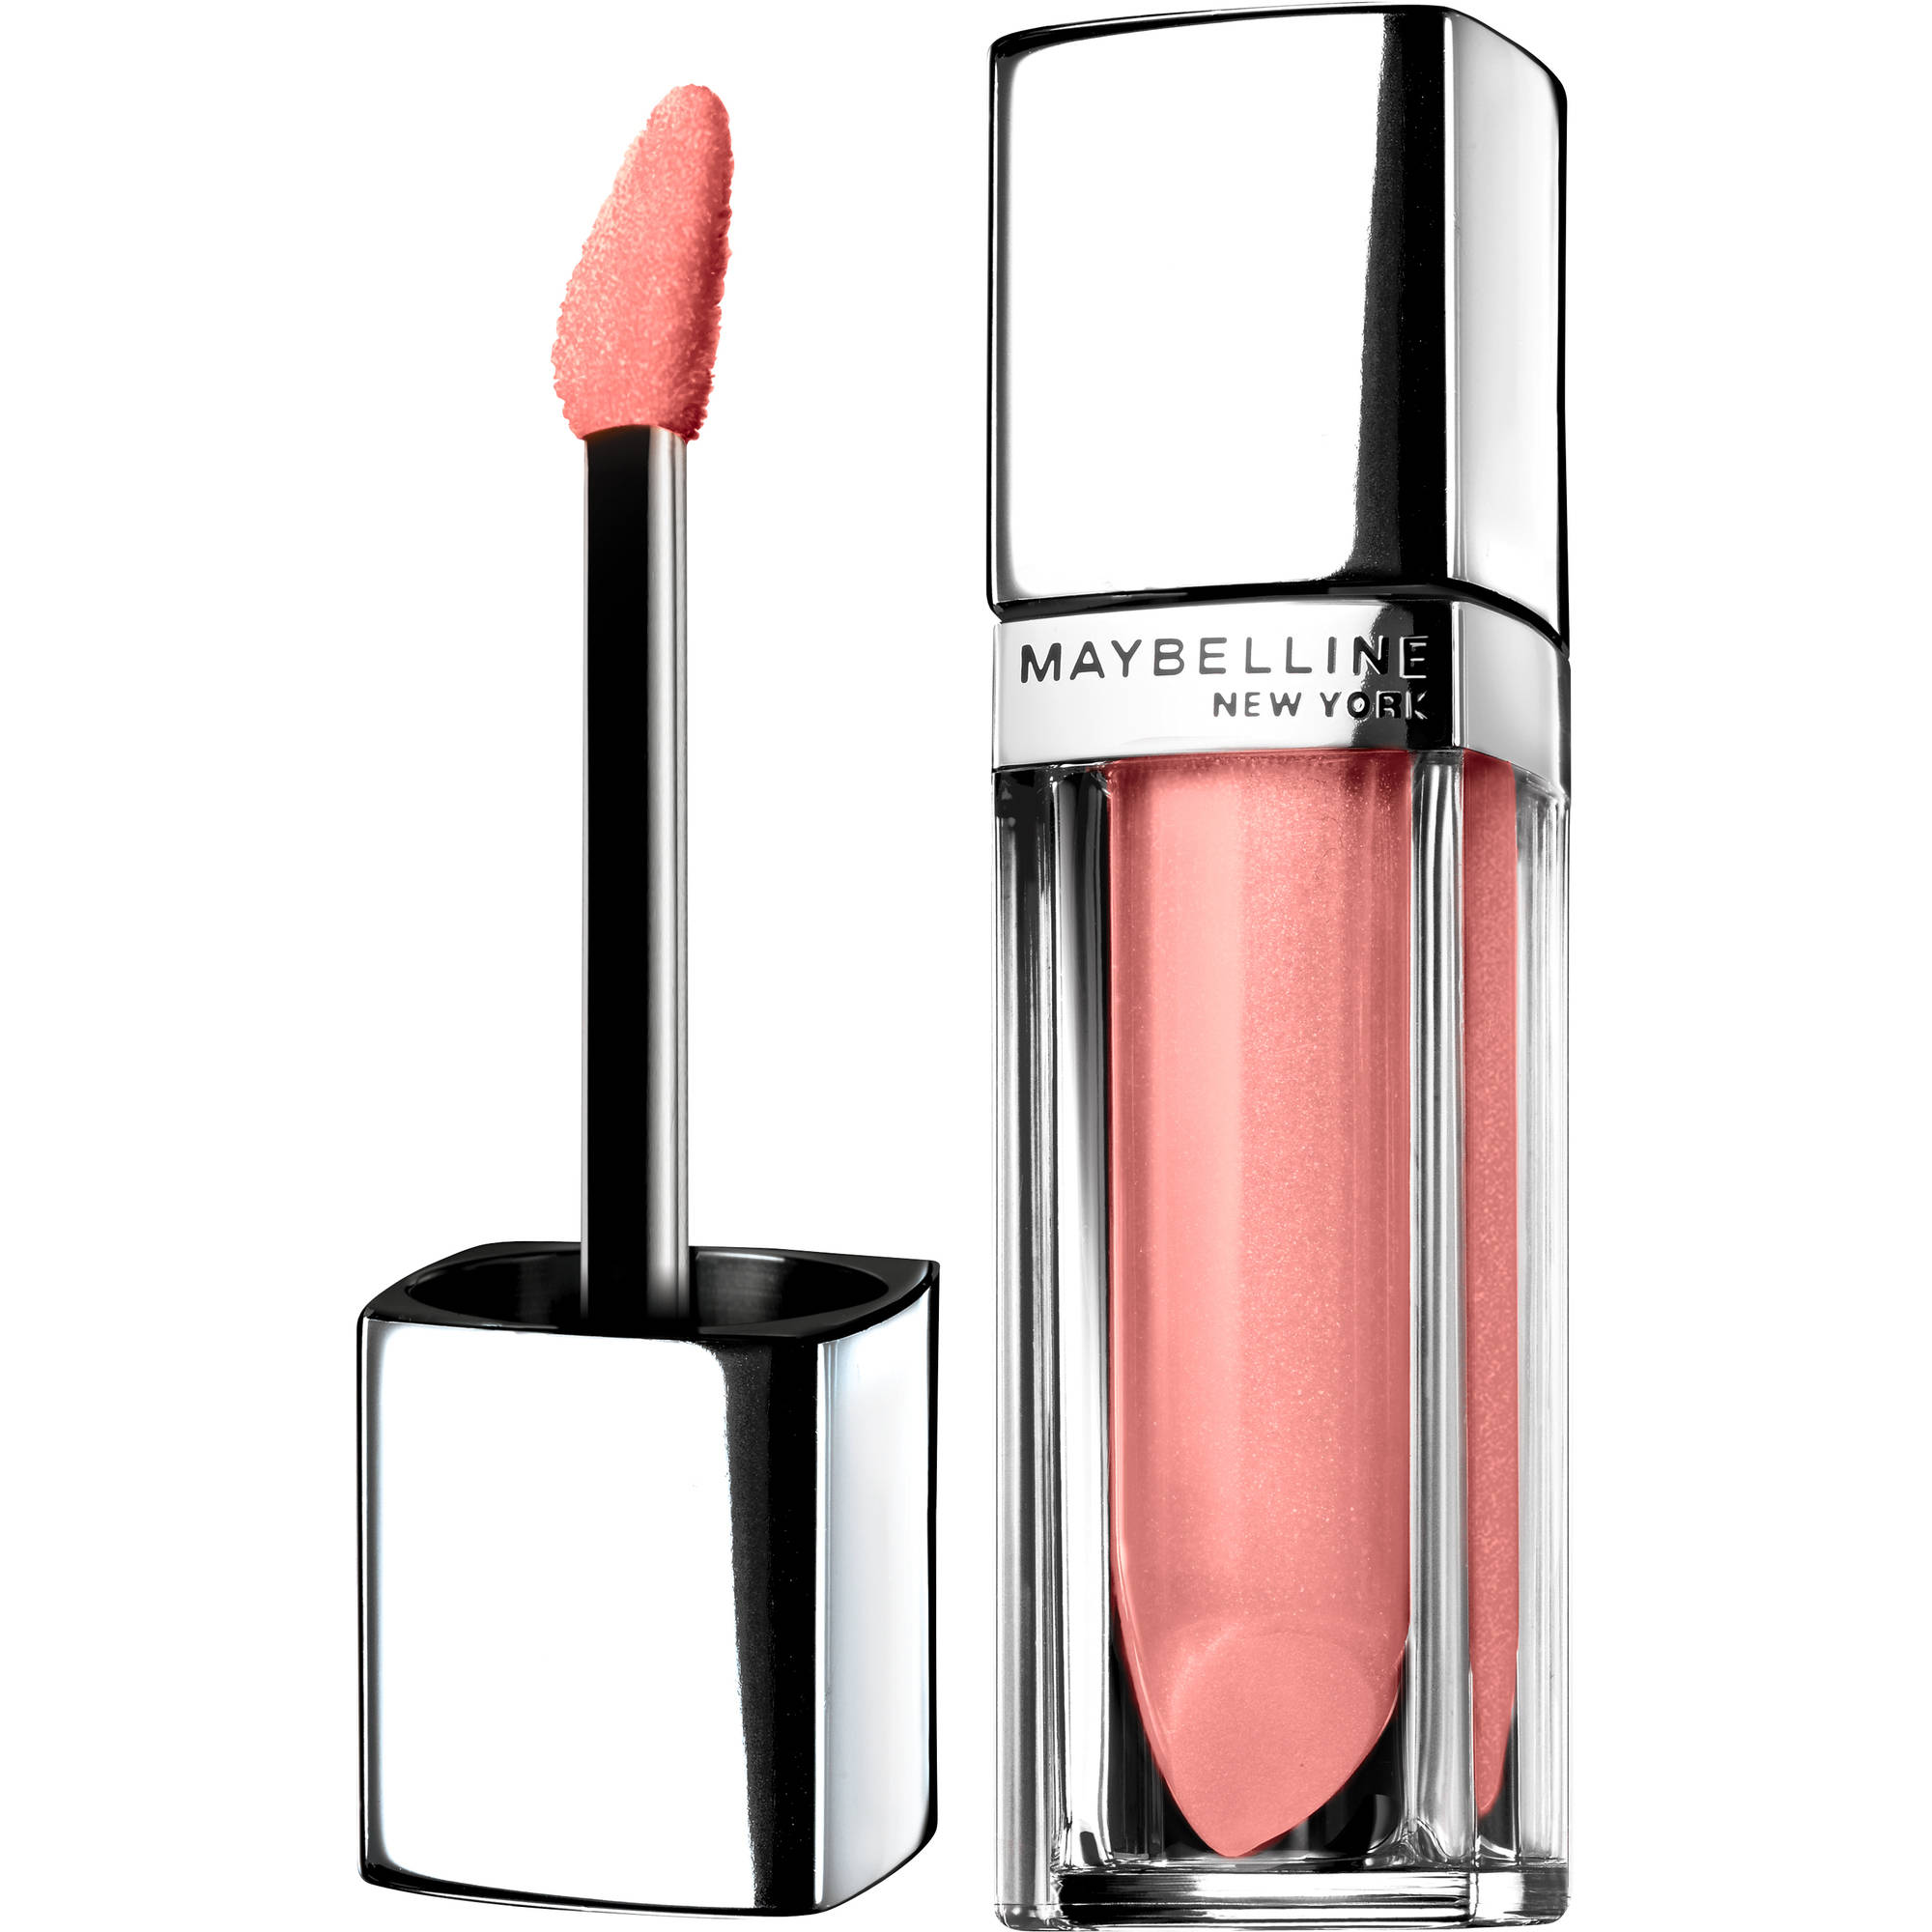 Maybelline New York Color Elixir Iridescents Lipcolor, Blushing Petal, 0.17 fl oz, Blushing Petal